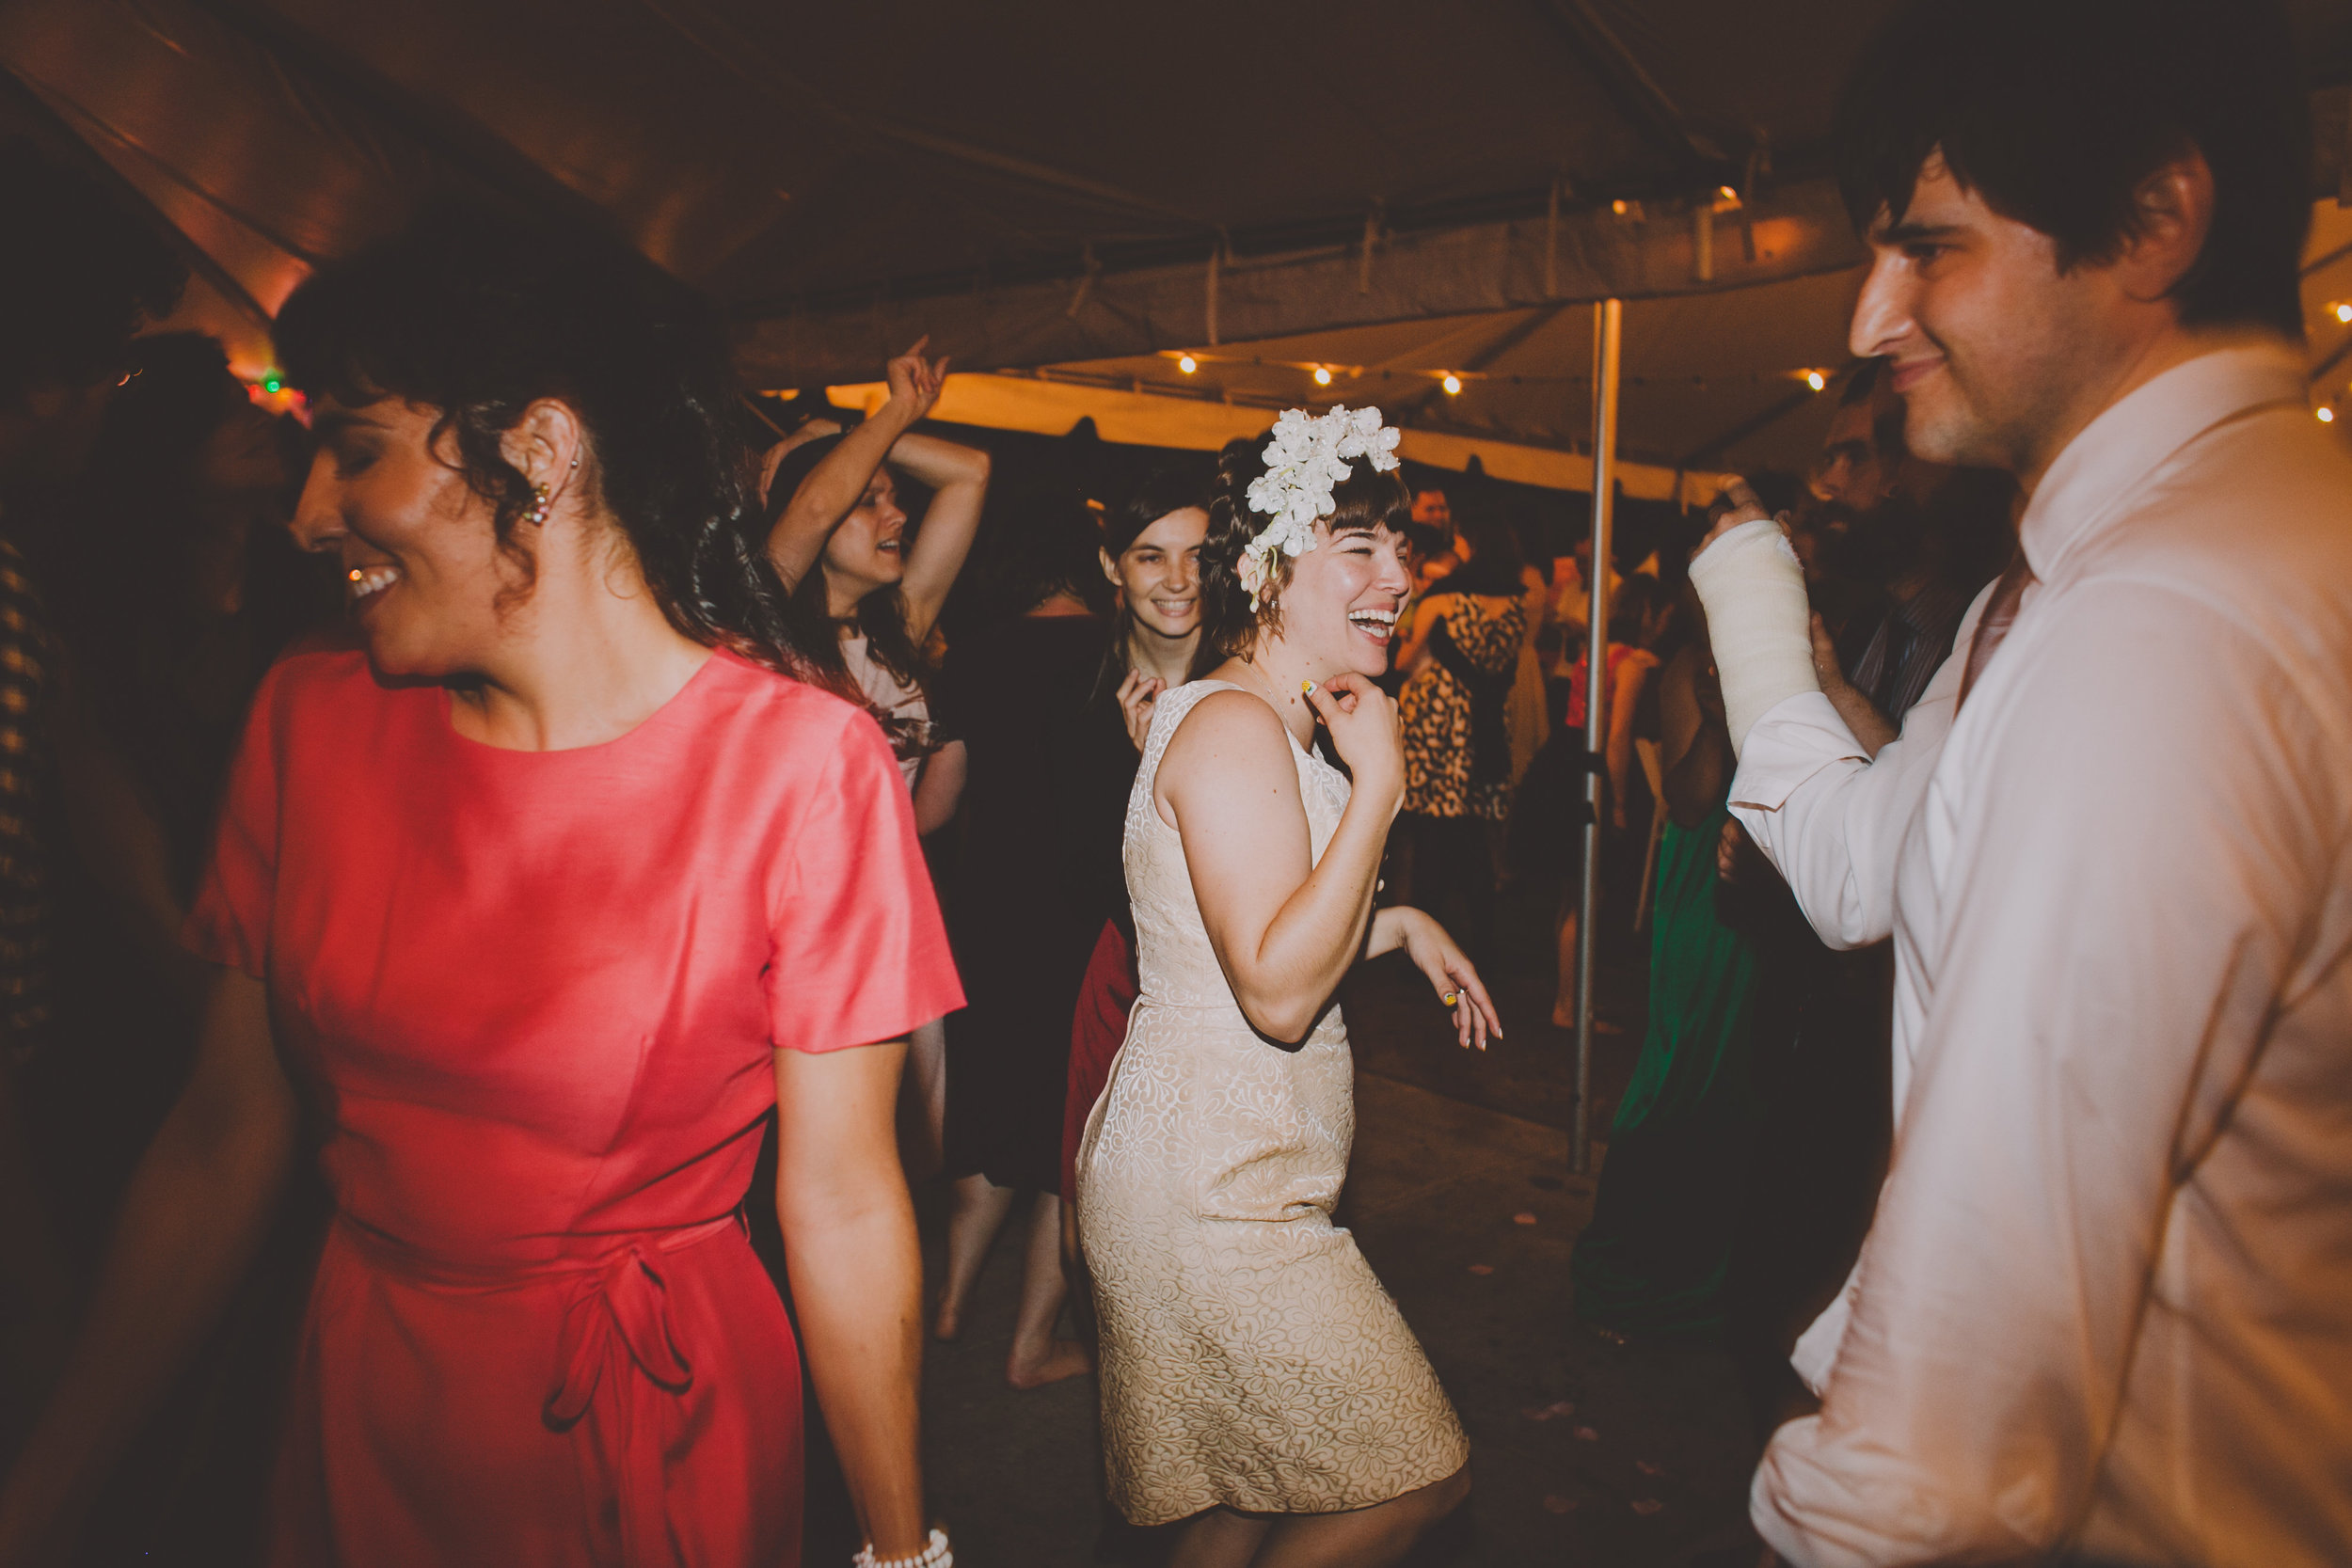 Robertas_Bushwick_Wedding_Tiki_Photography369.JPG